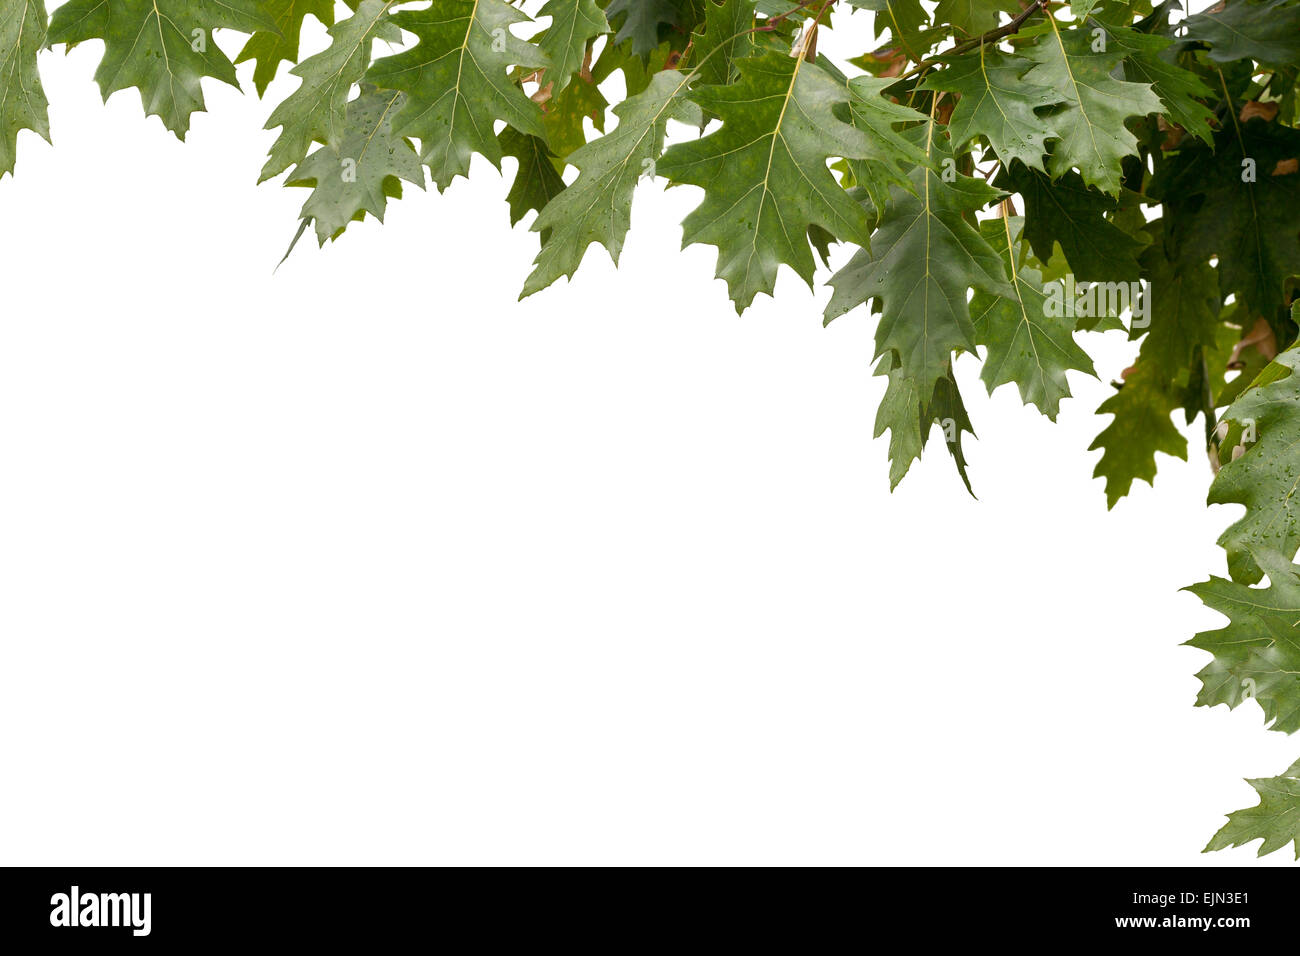 isolated frame in the upper right corner of the green maple leaves - Stock Image